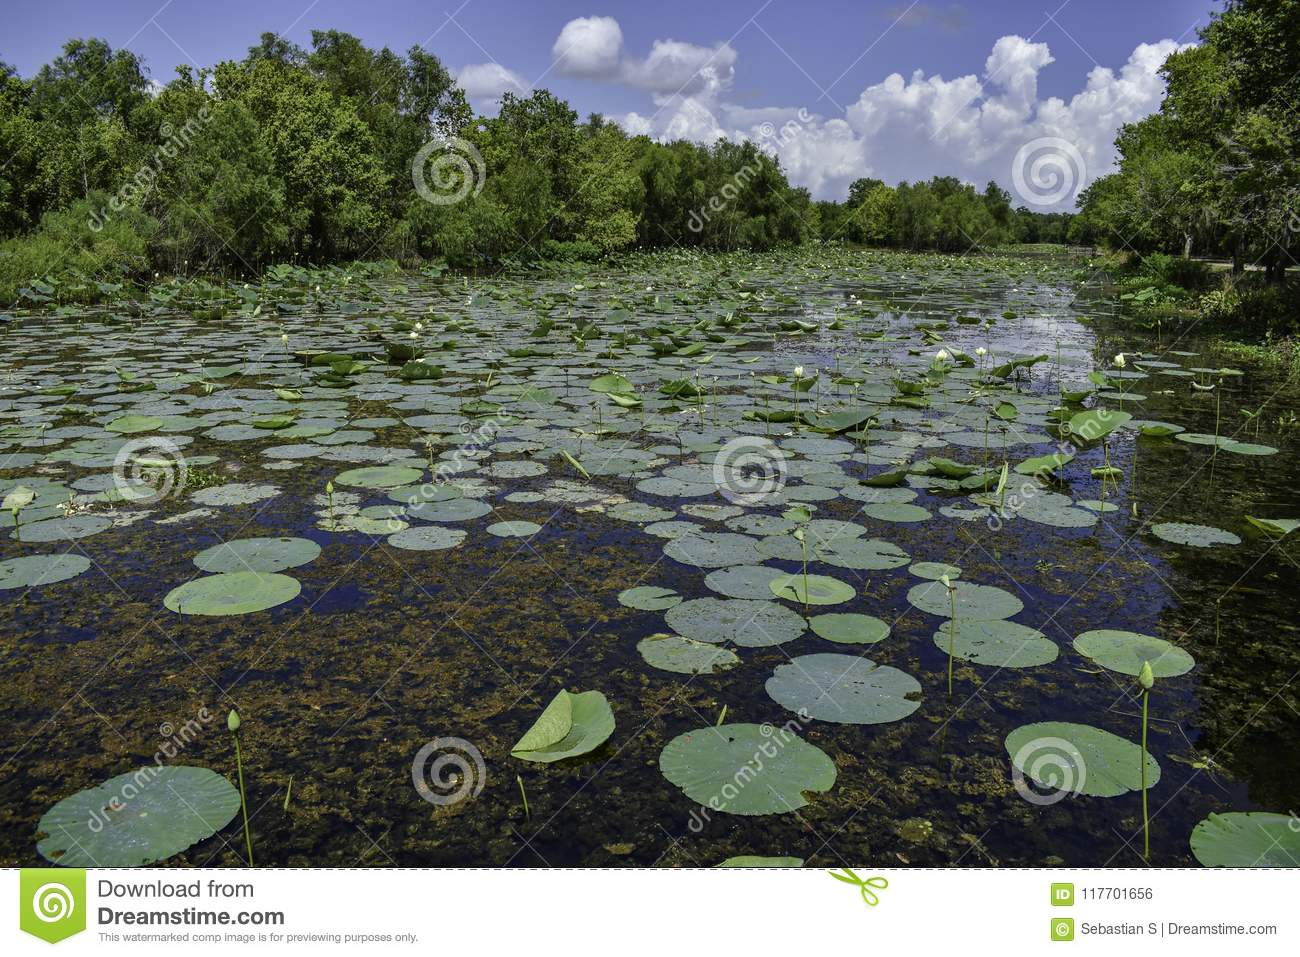 Lily Pads in Elm Lake at Brazos Bend State Park